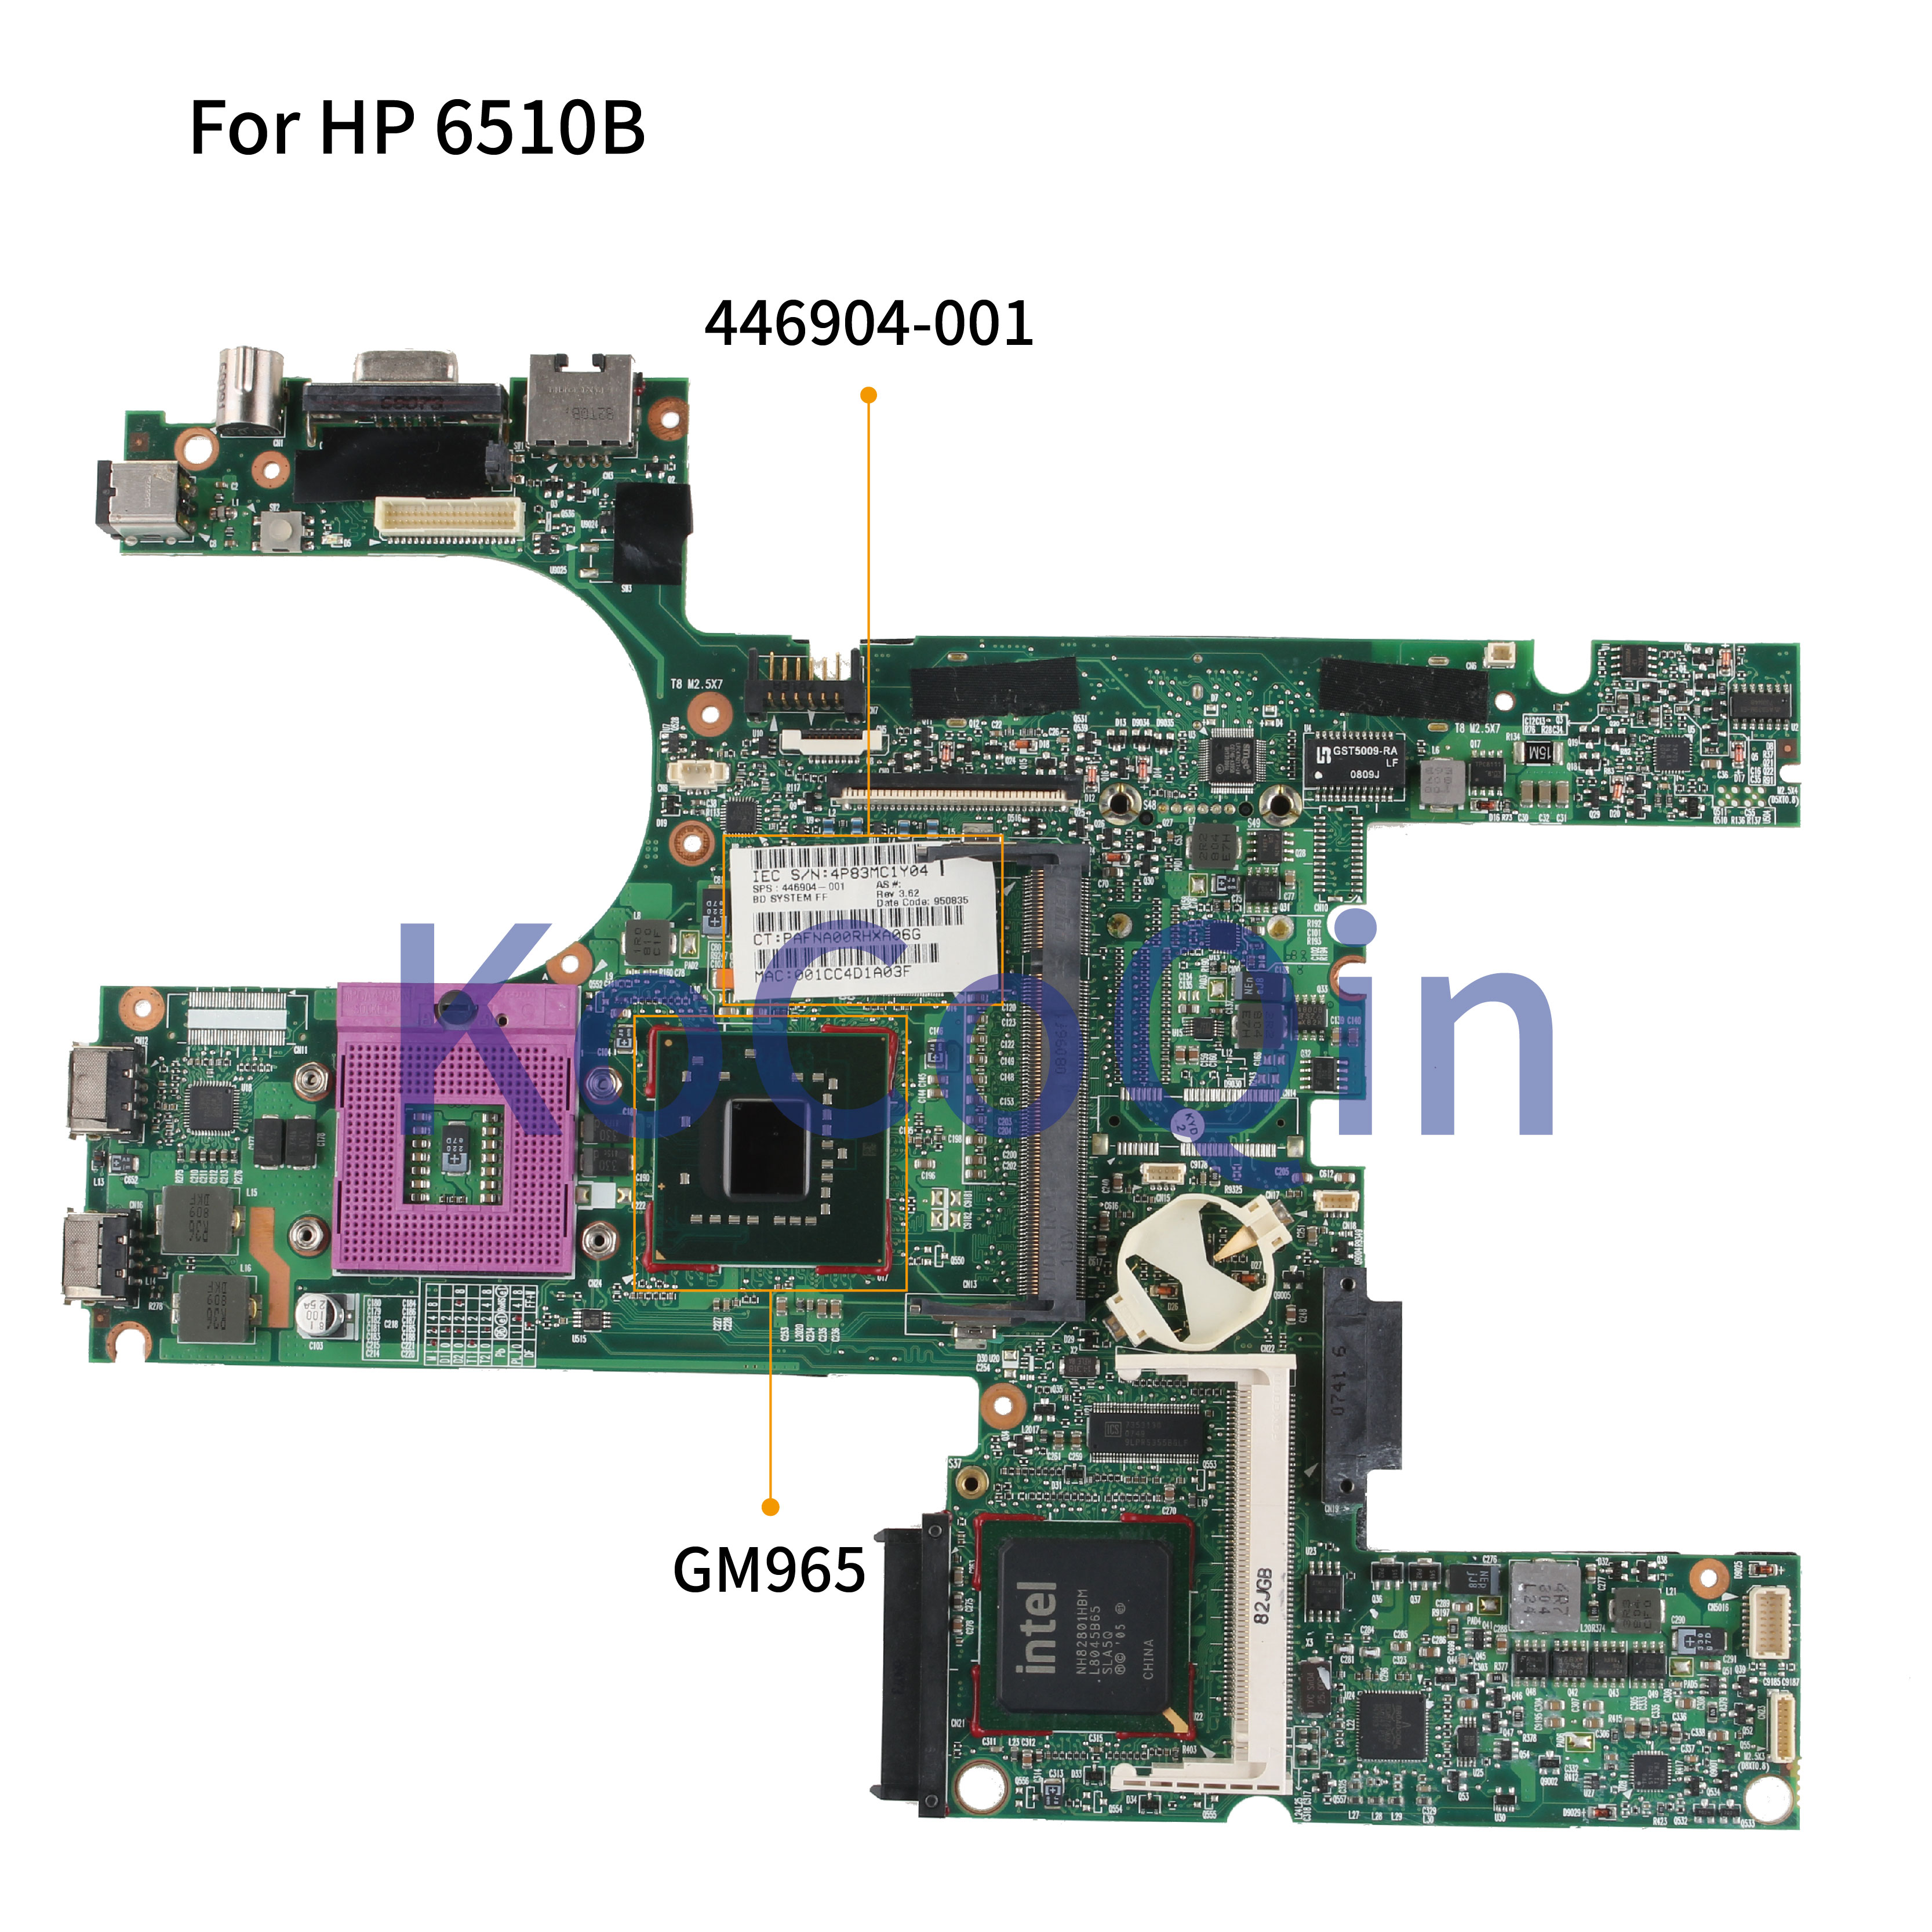 KoCoQin Laptop motherboard For HP Compaq 6510B 6710B Mainboard 446904-001 446904-501 GM965 DDR2